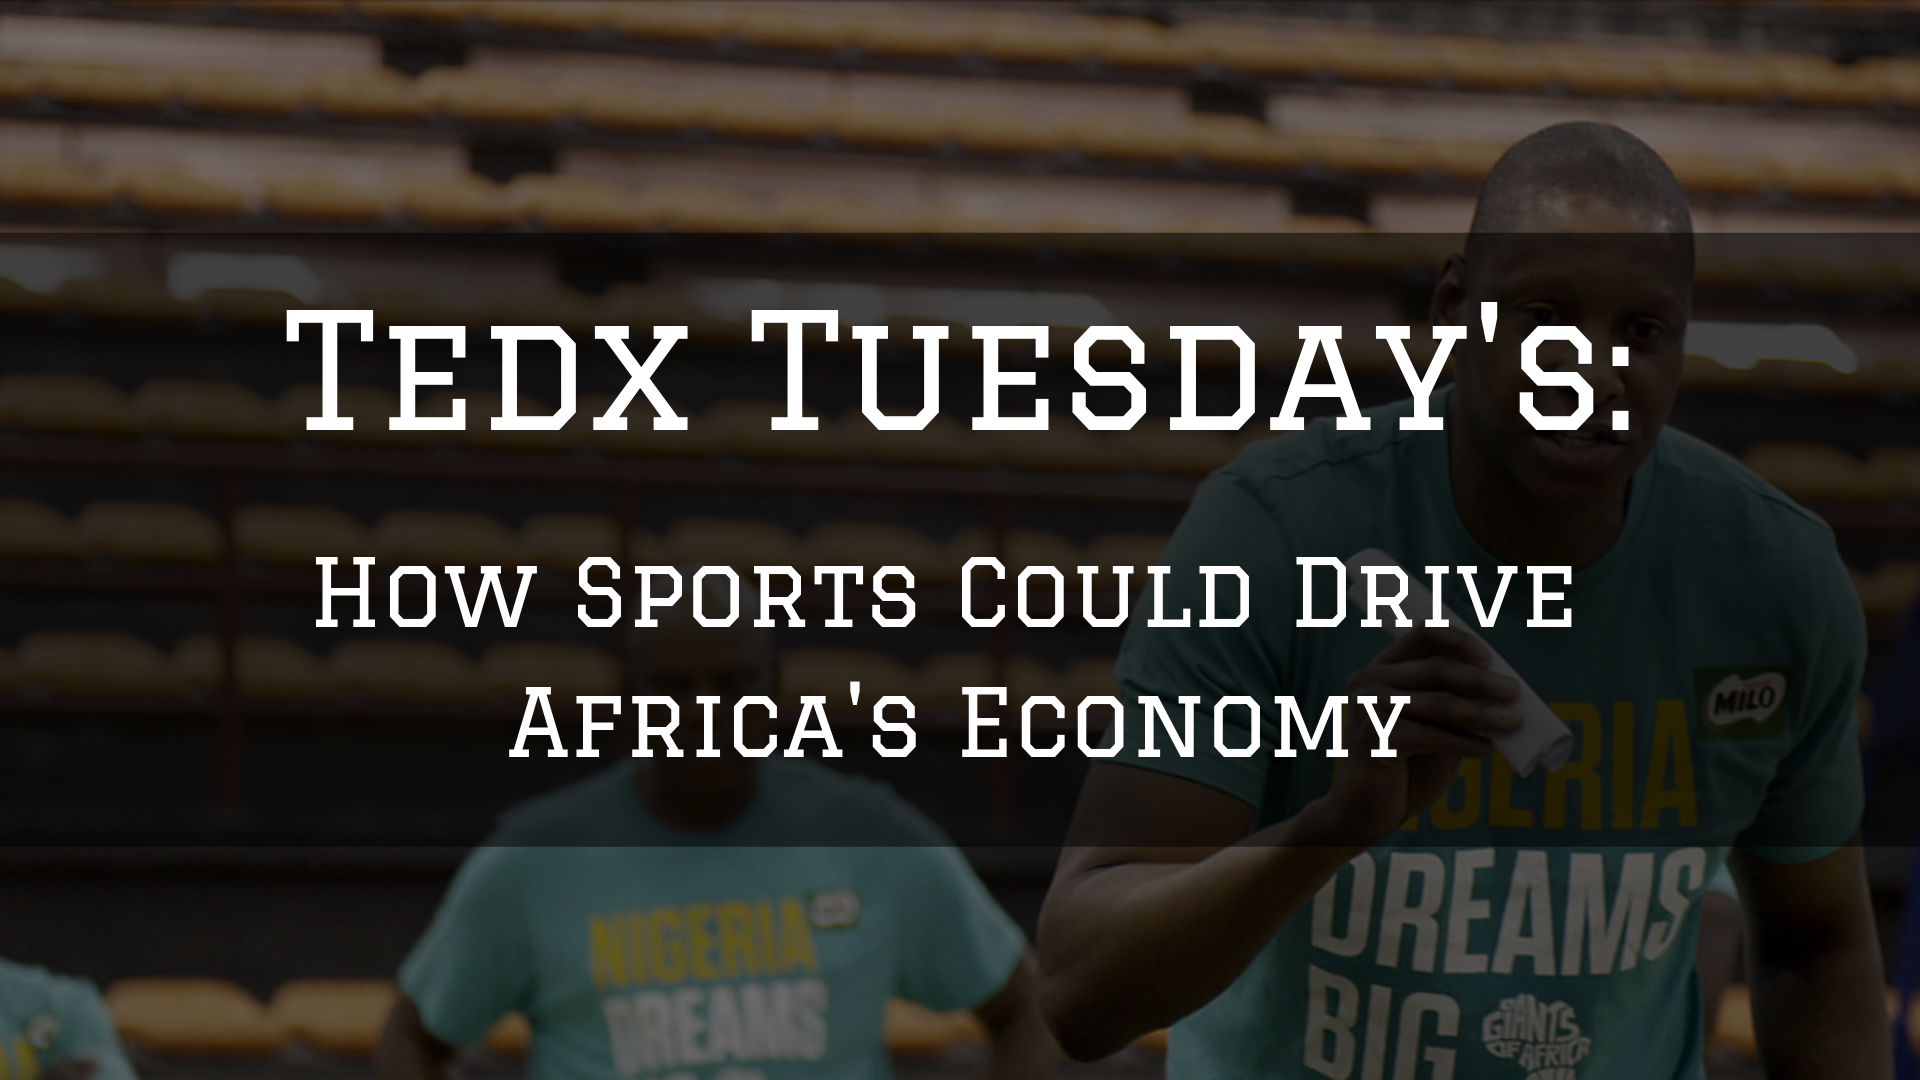 Tedx Tuesday's: How Sports Could Drive Africa's Economy